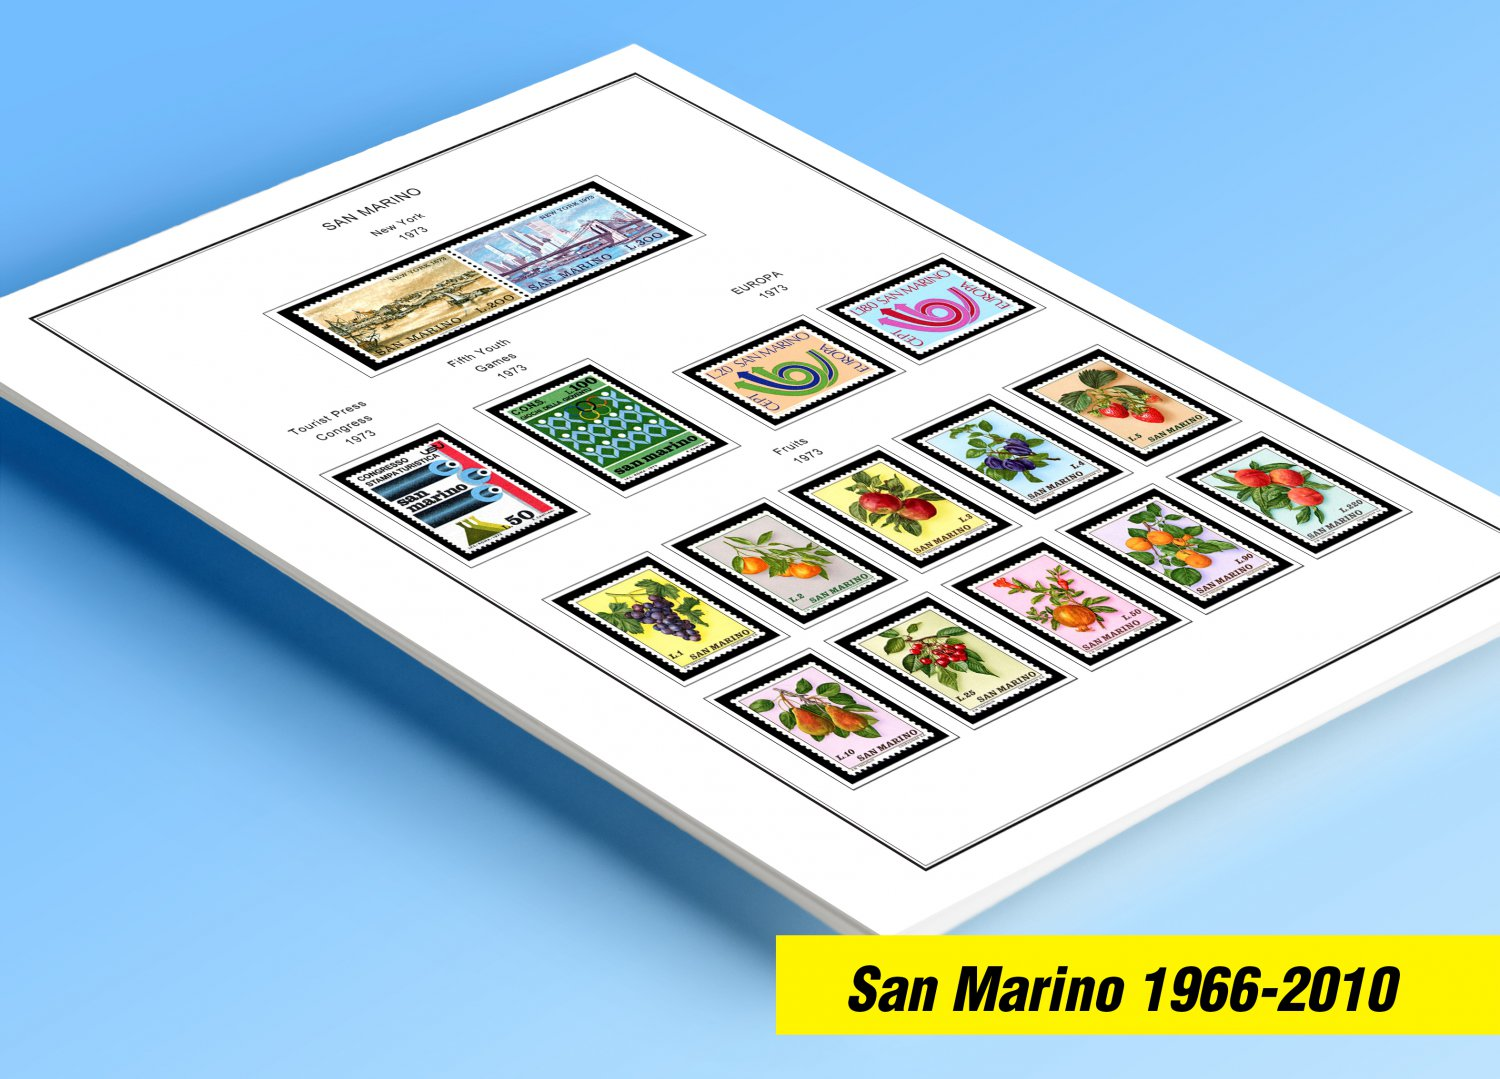 COLOR PRINTED SAN MARINO 1966-2010 STAMP ALBUM PAGES (180 illustrated pages)